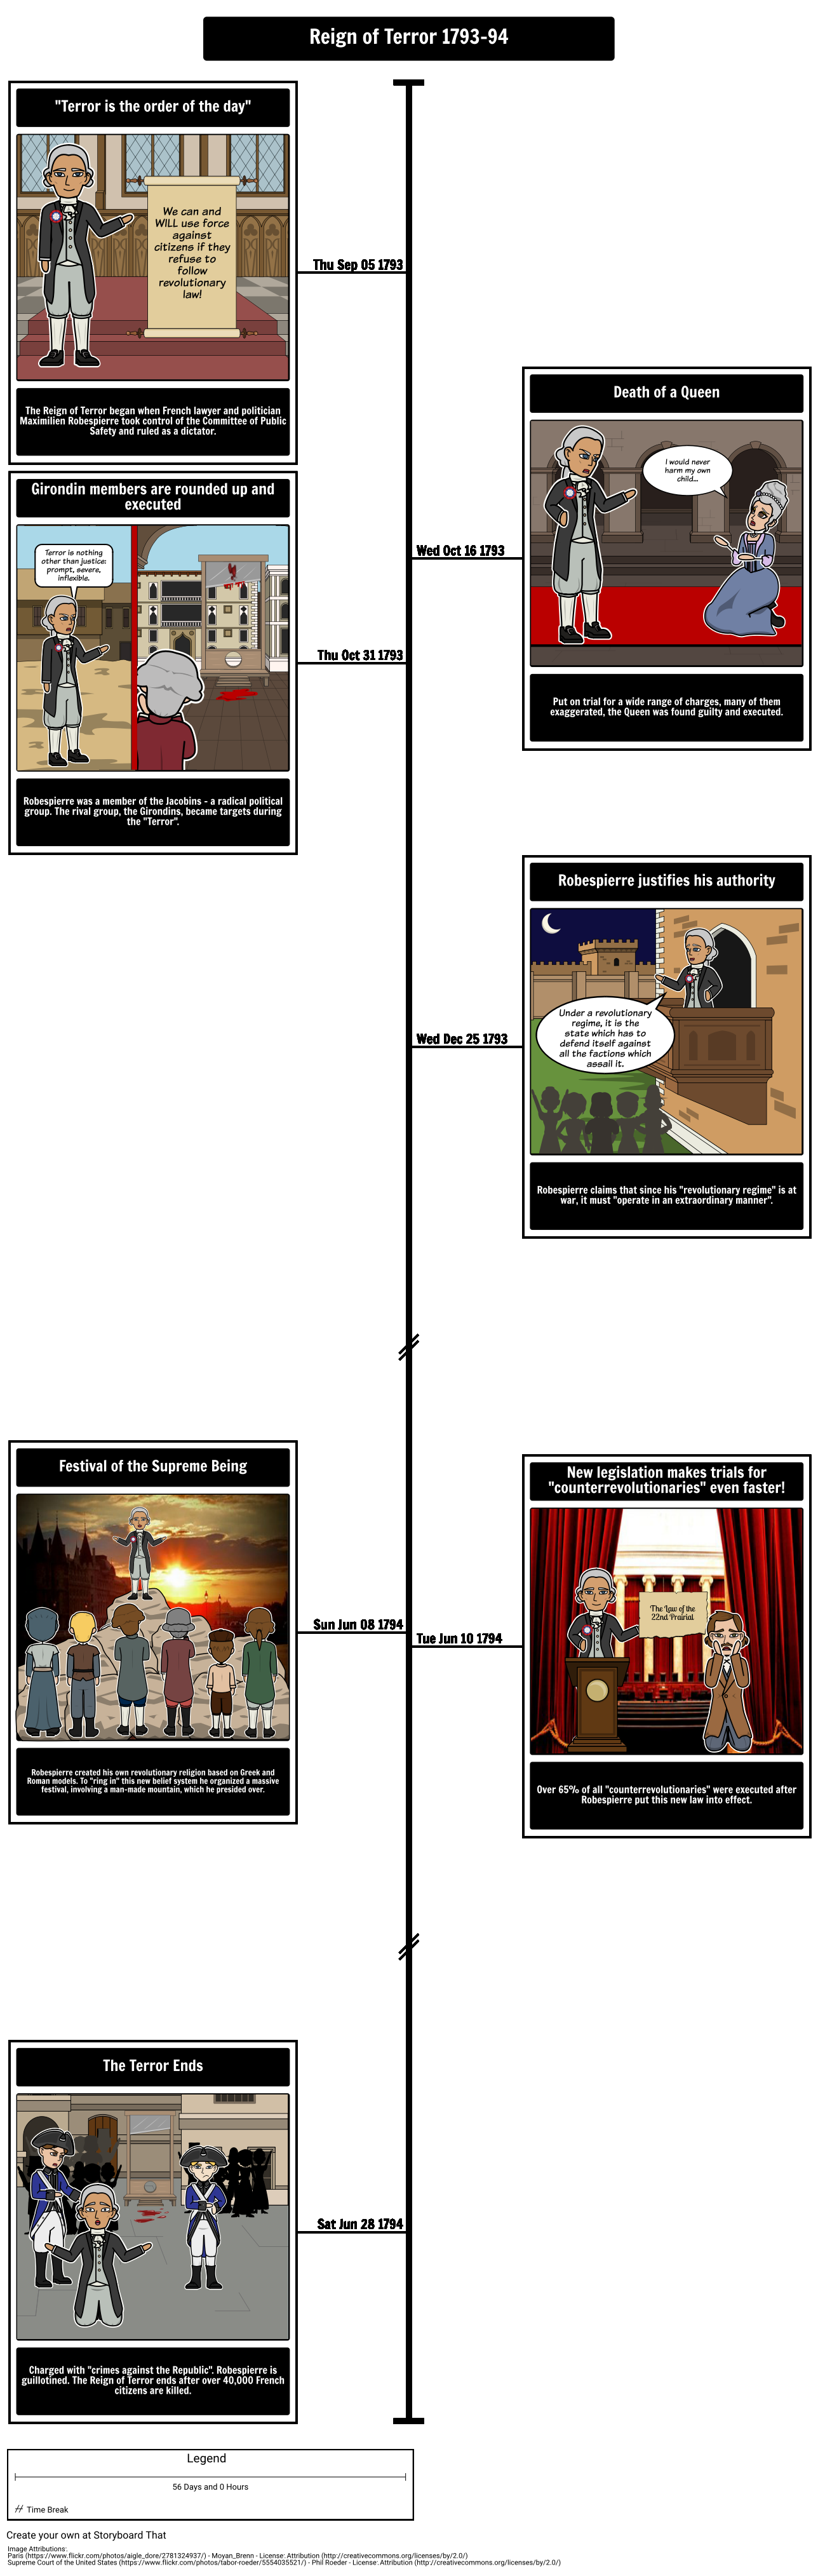 french revolution summary lesson plans political cartoons the french revolution reign of terror timeline